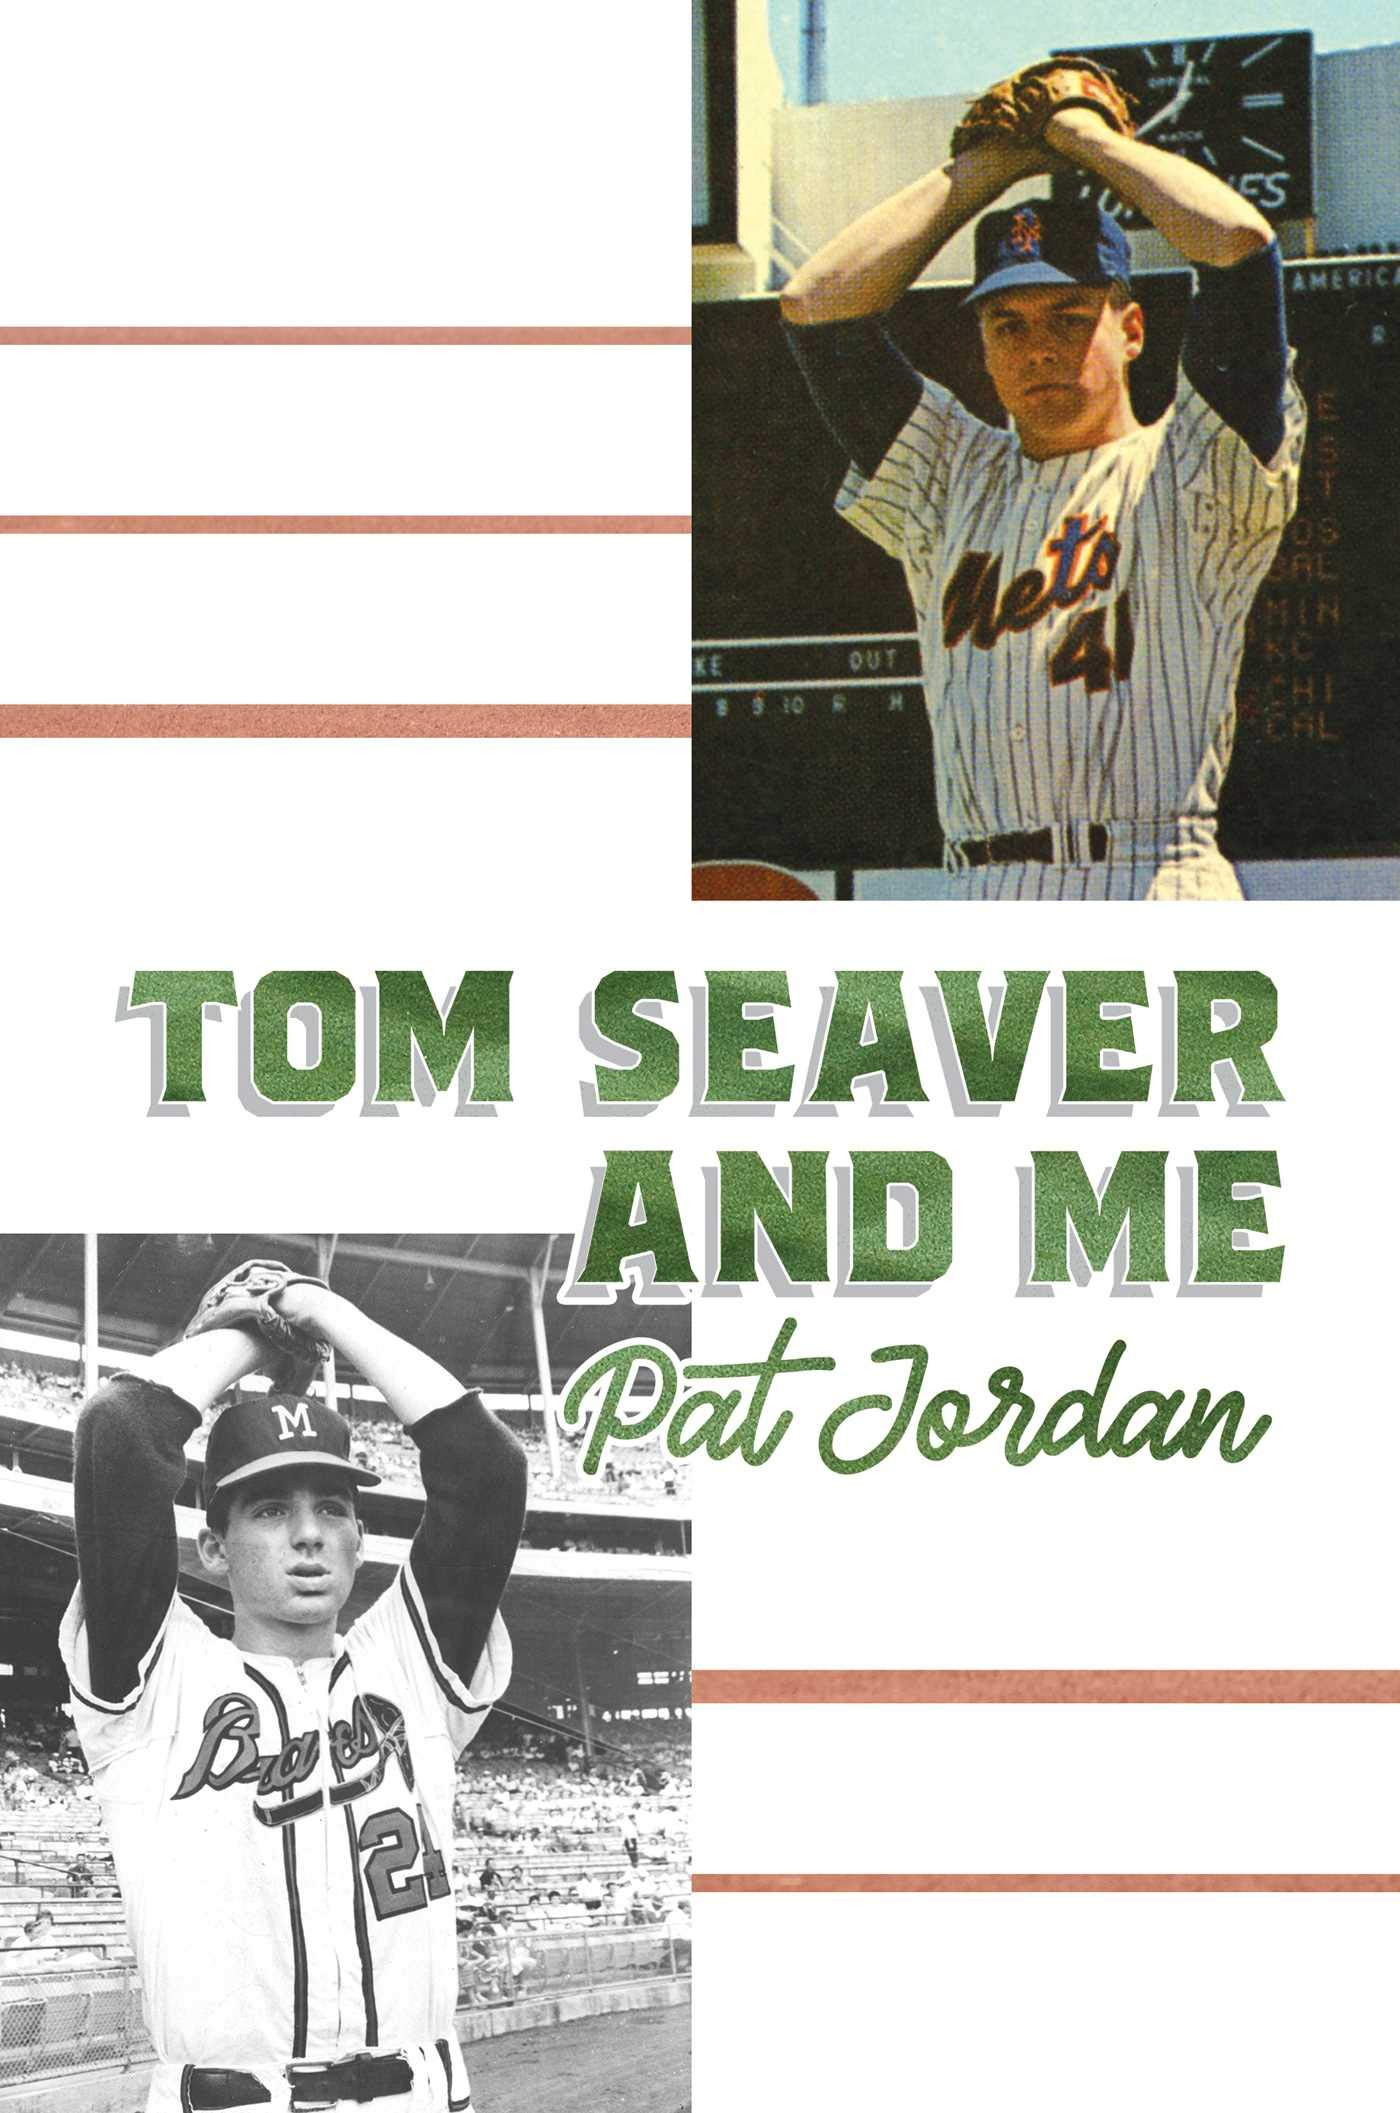 Image OfTom Seaver And Me